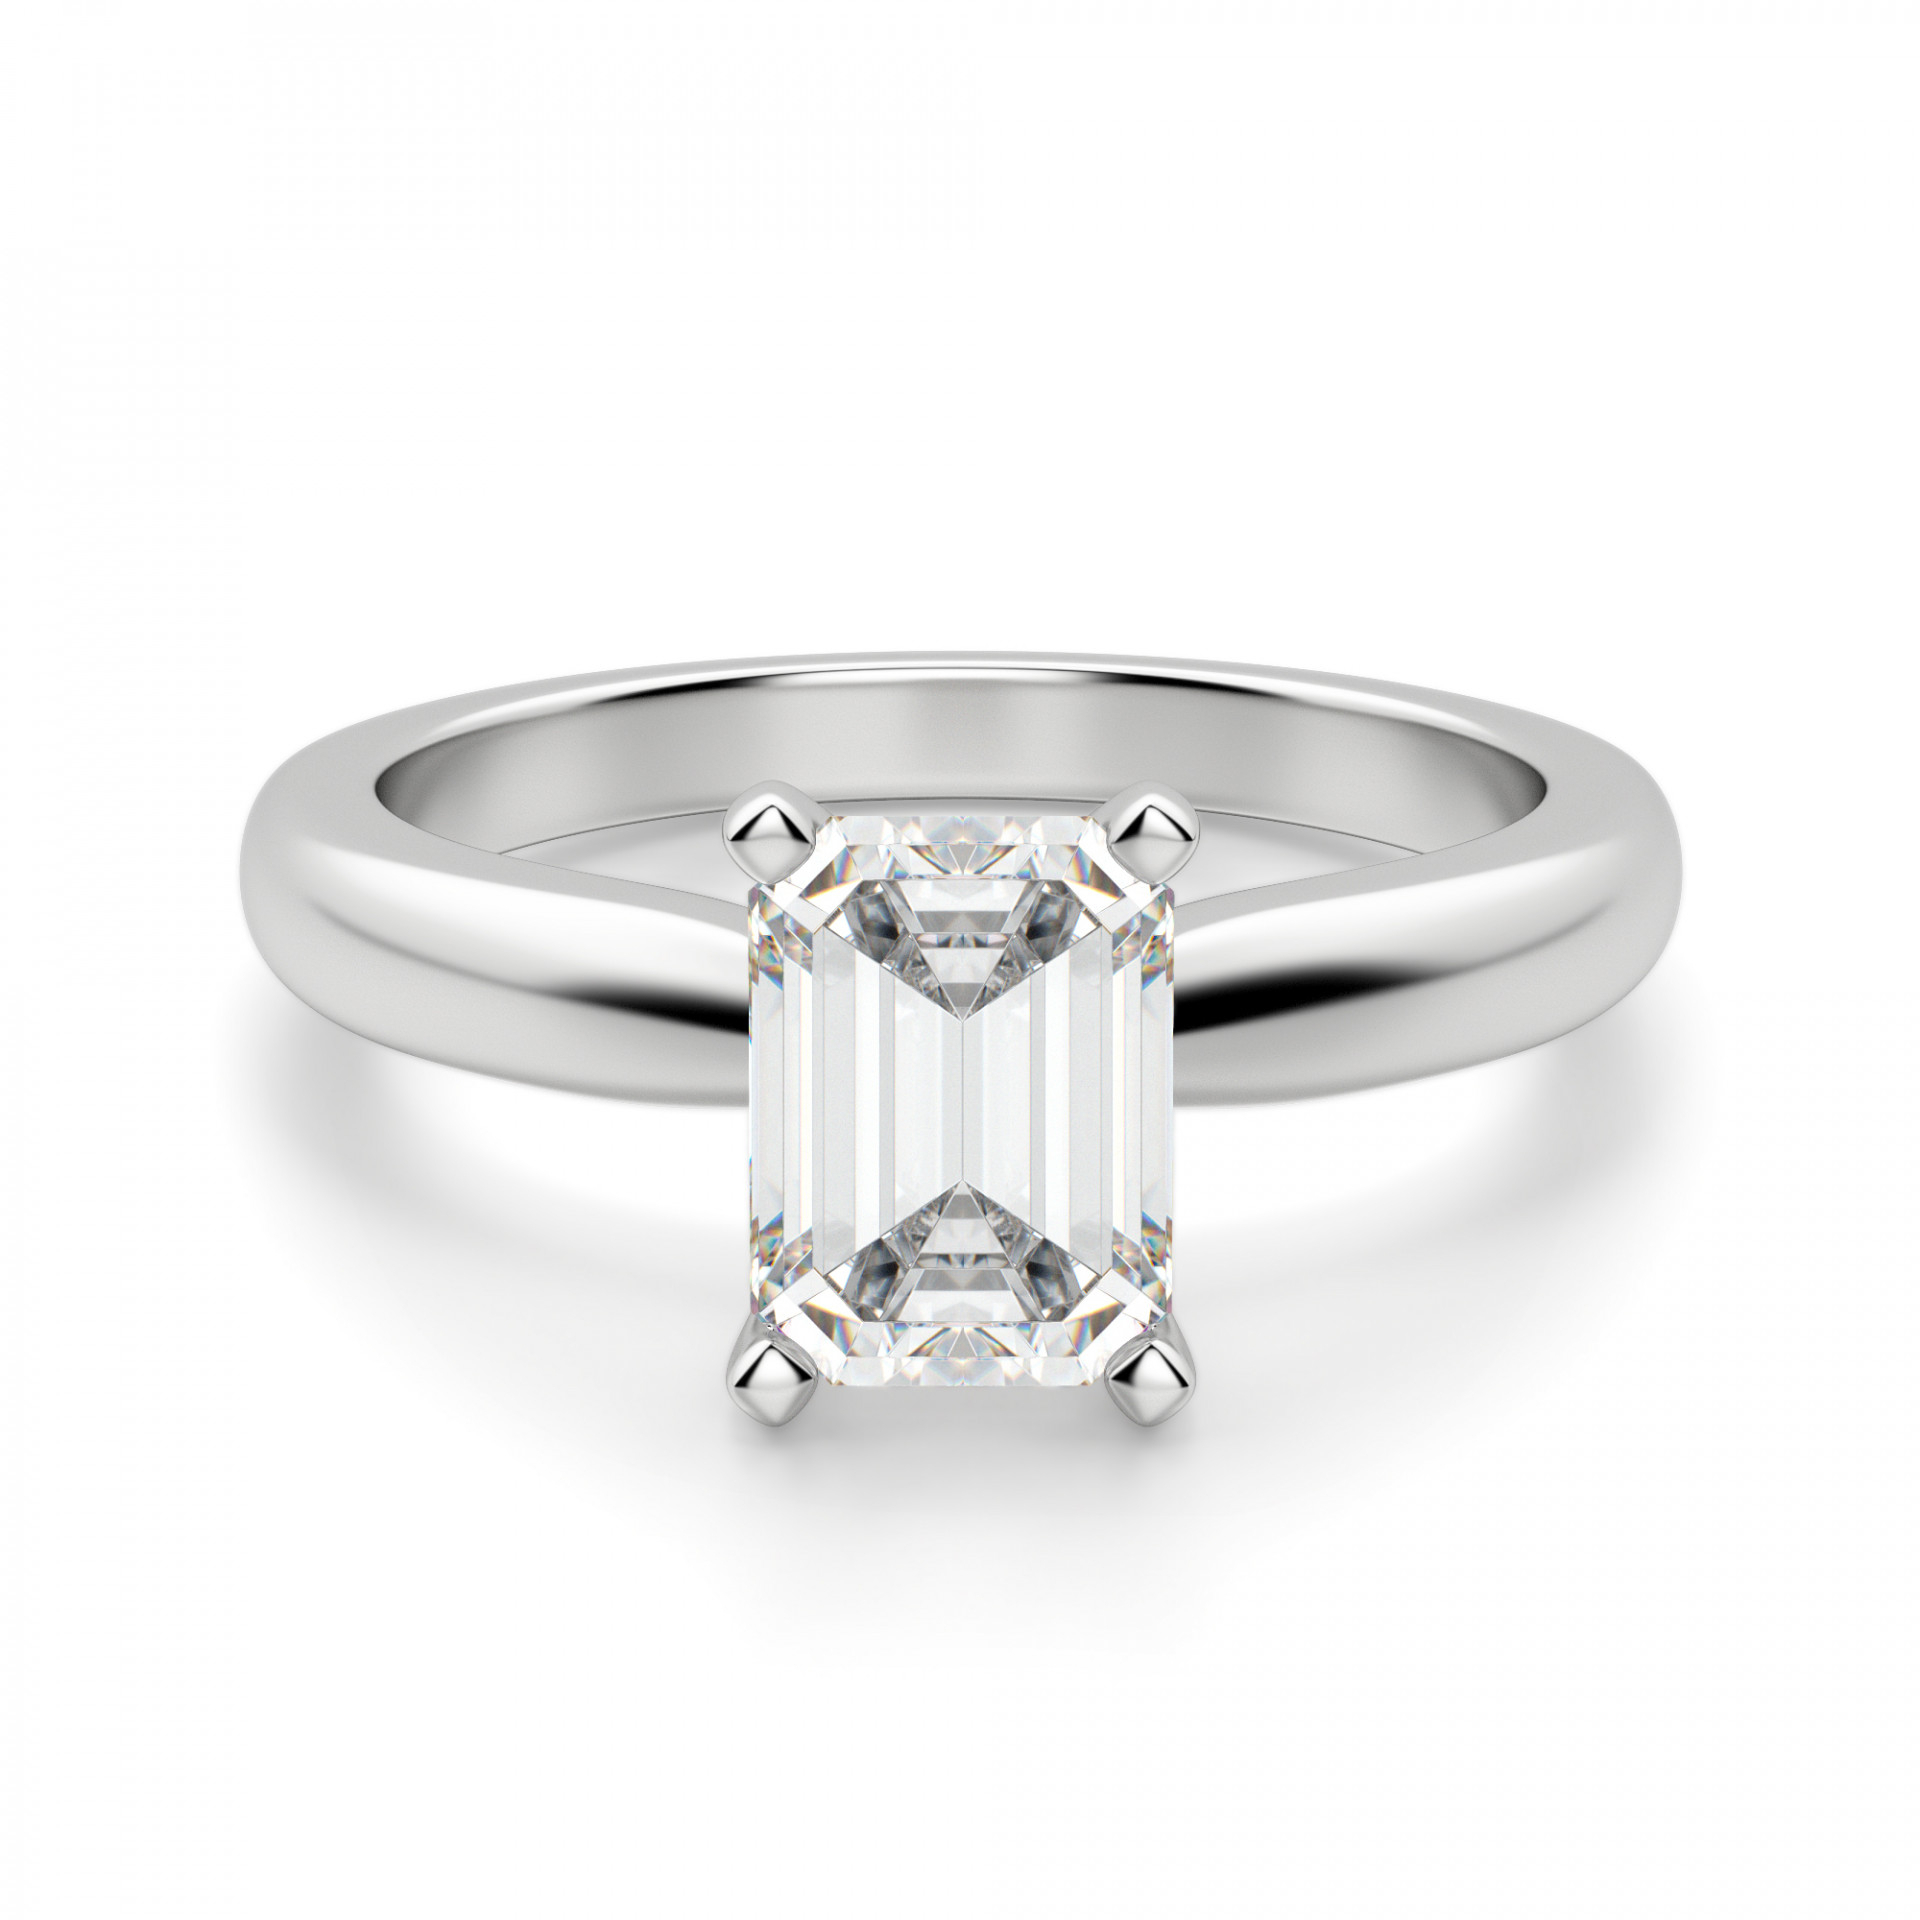 Tiffany Style Solitaire Emerald Cut Engagement Ring Regarding Solitaire Emerald Cut Engagement Rings (View 3 of 25)